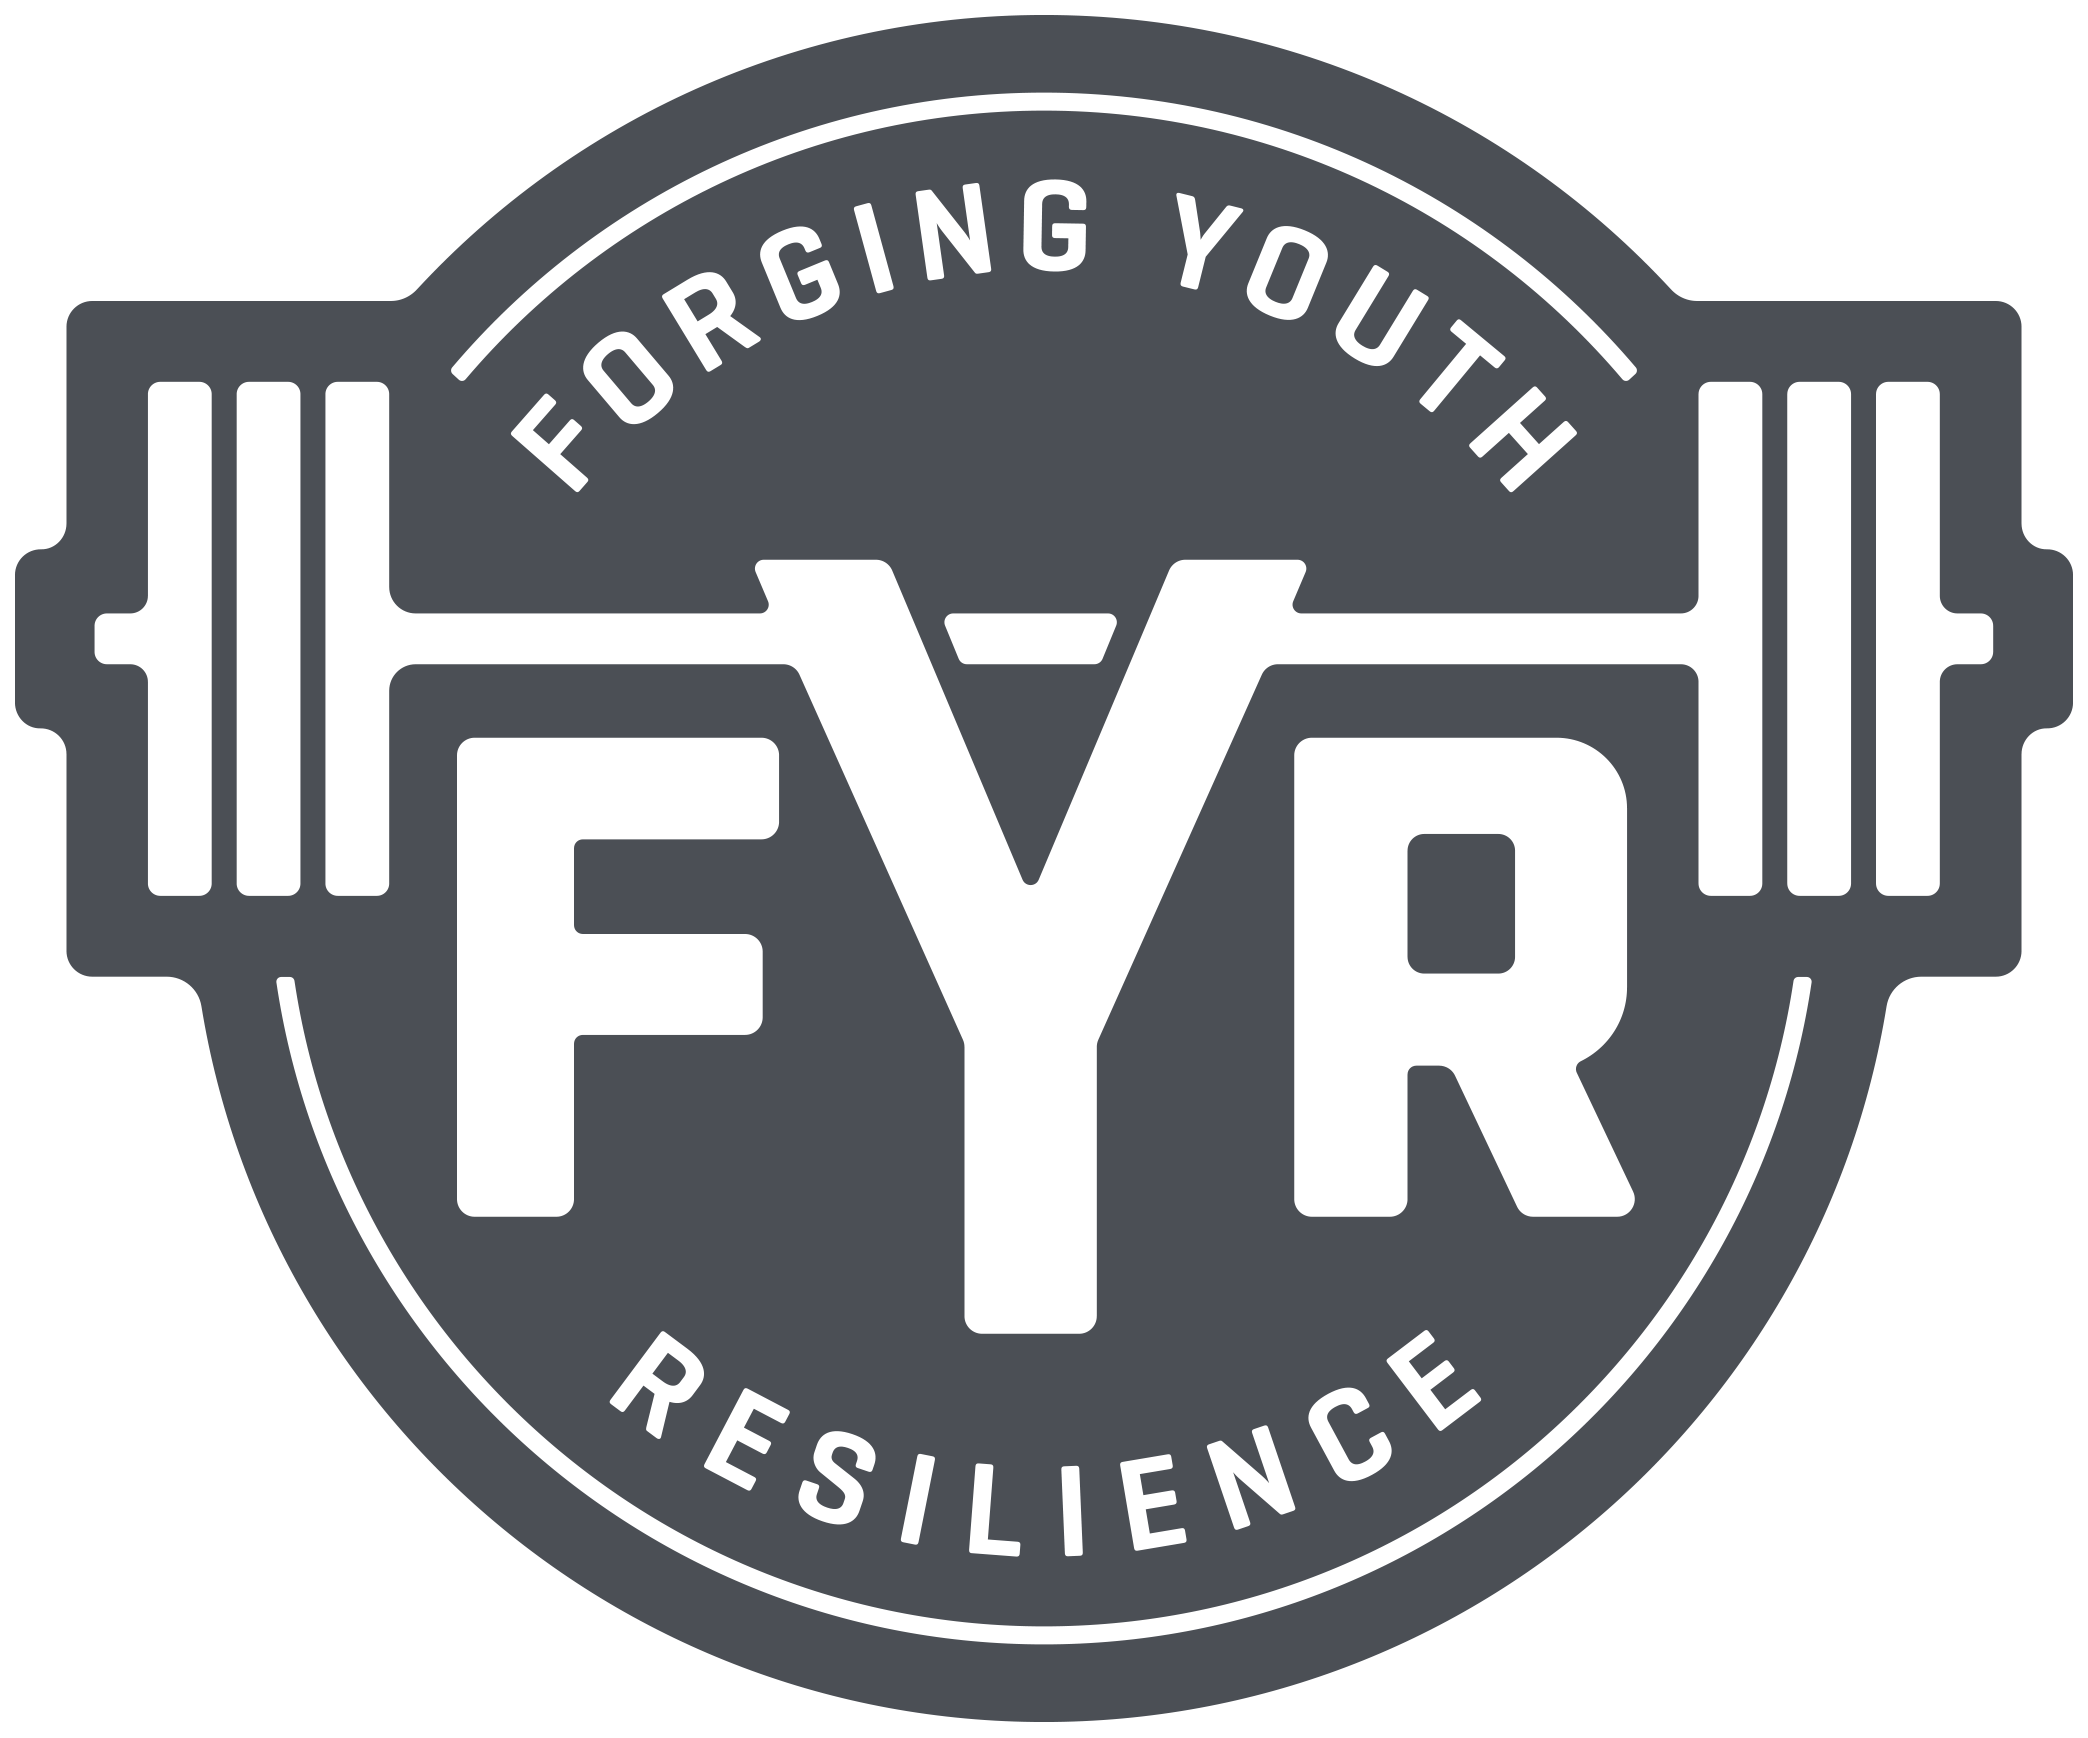 Forging Youth Resilience